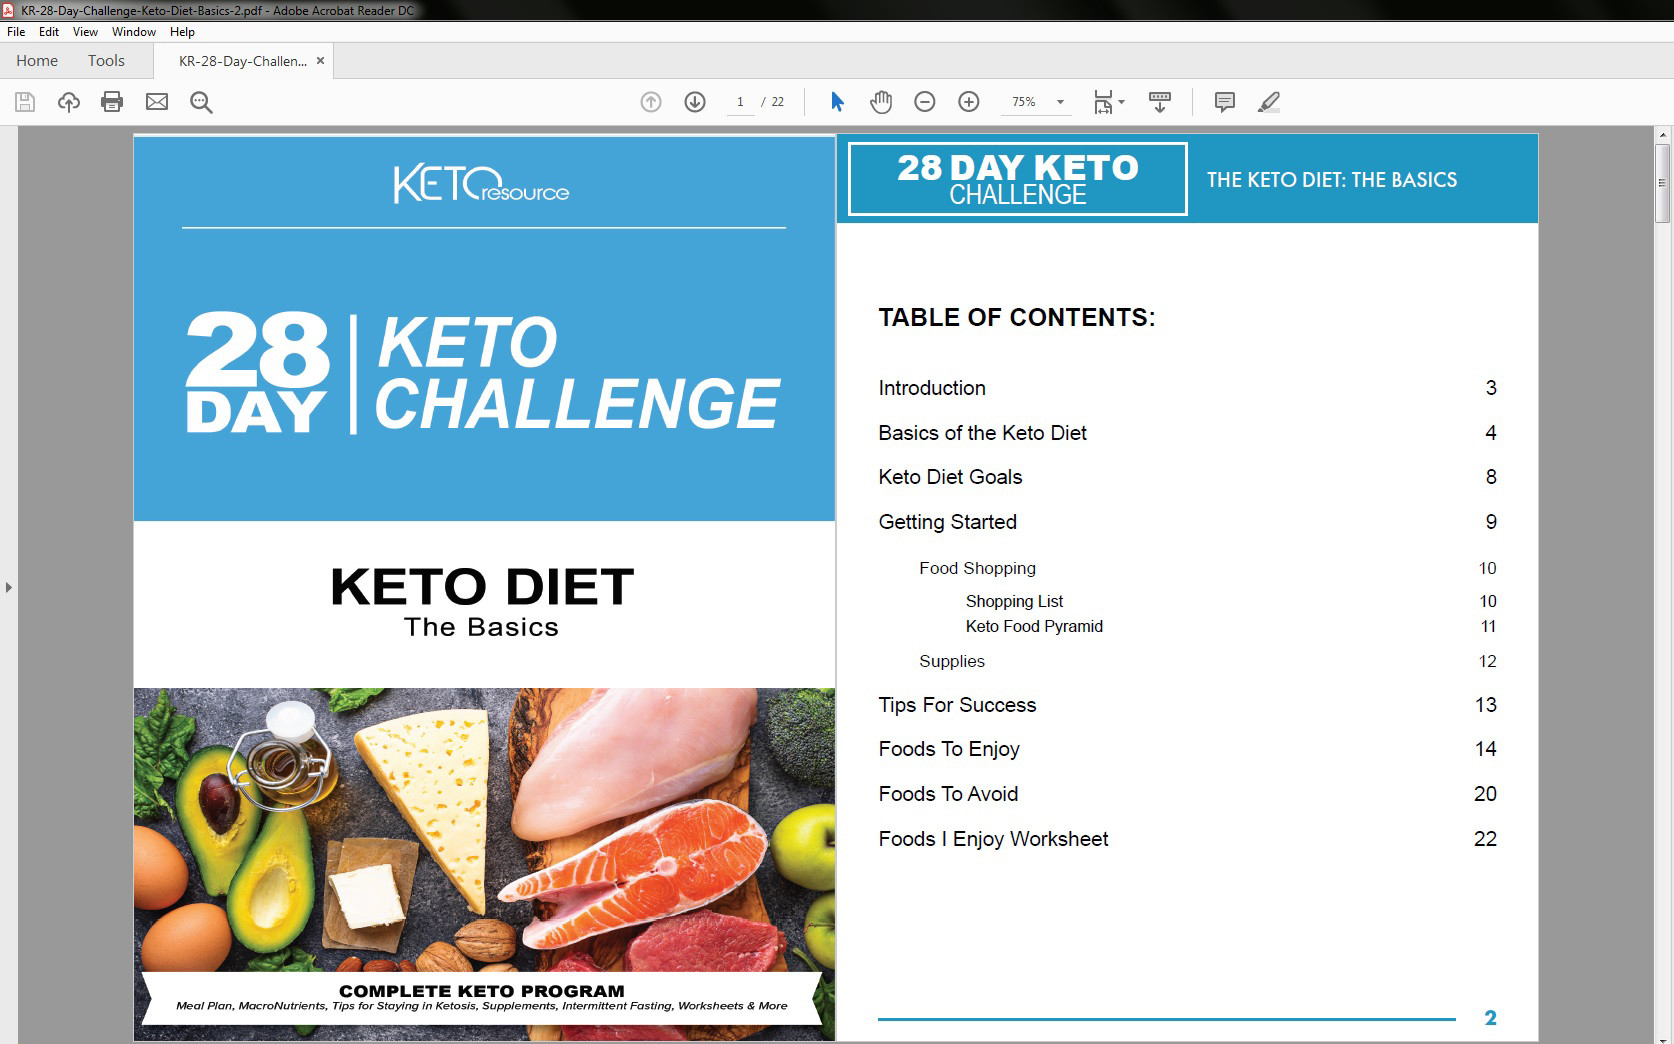 28-Day Keto Challenge Table of Contents